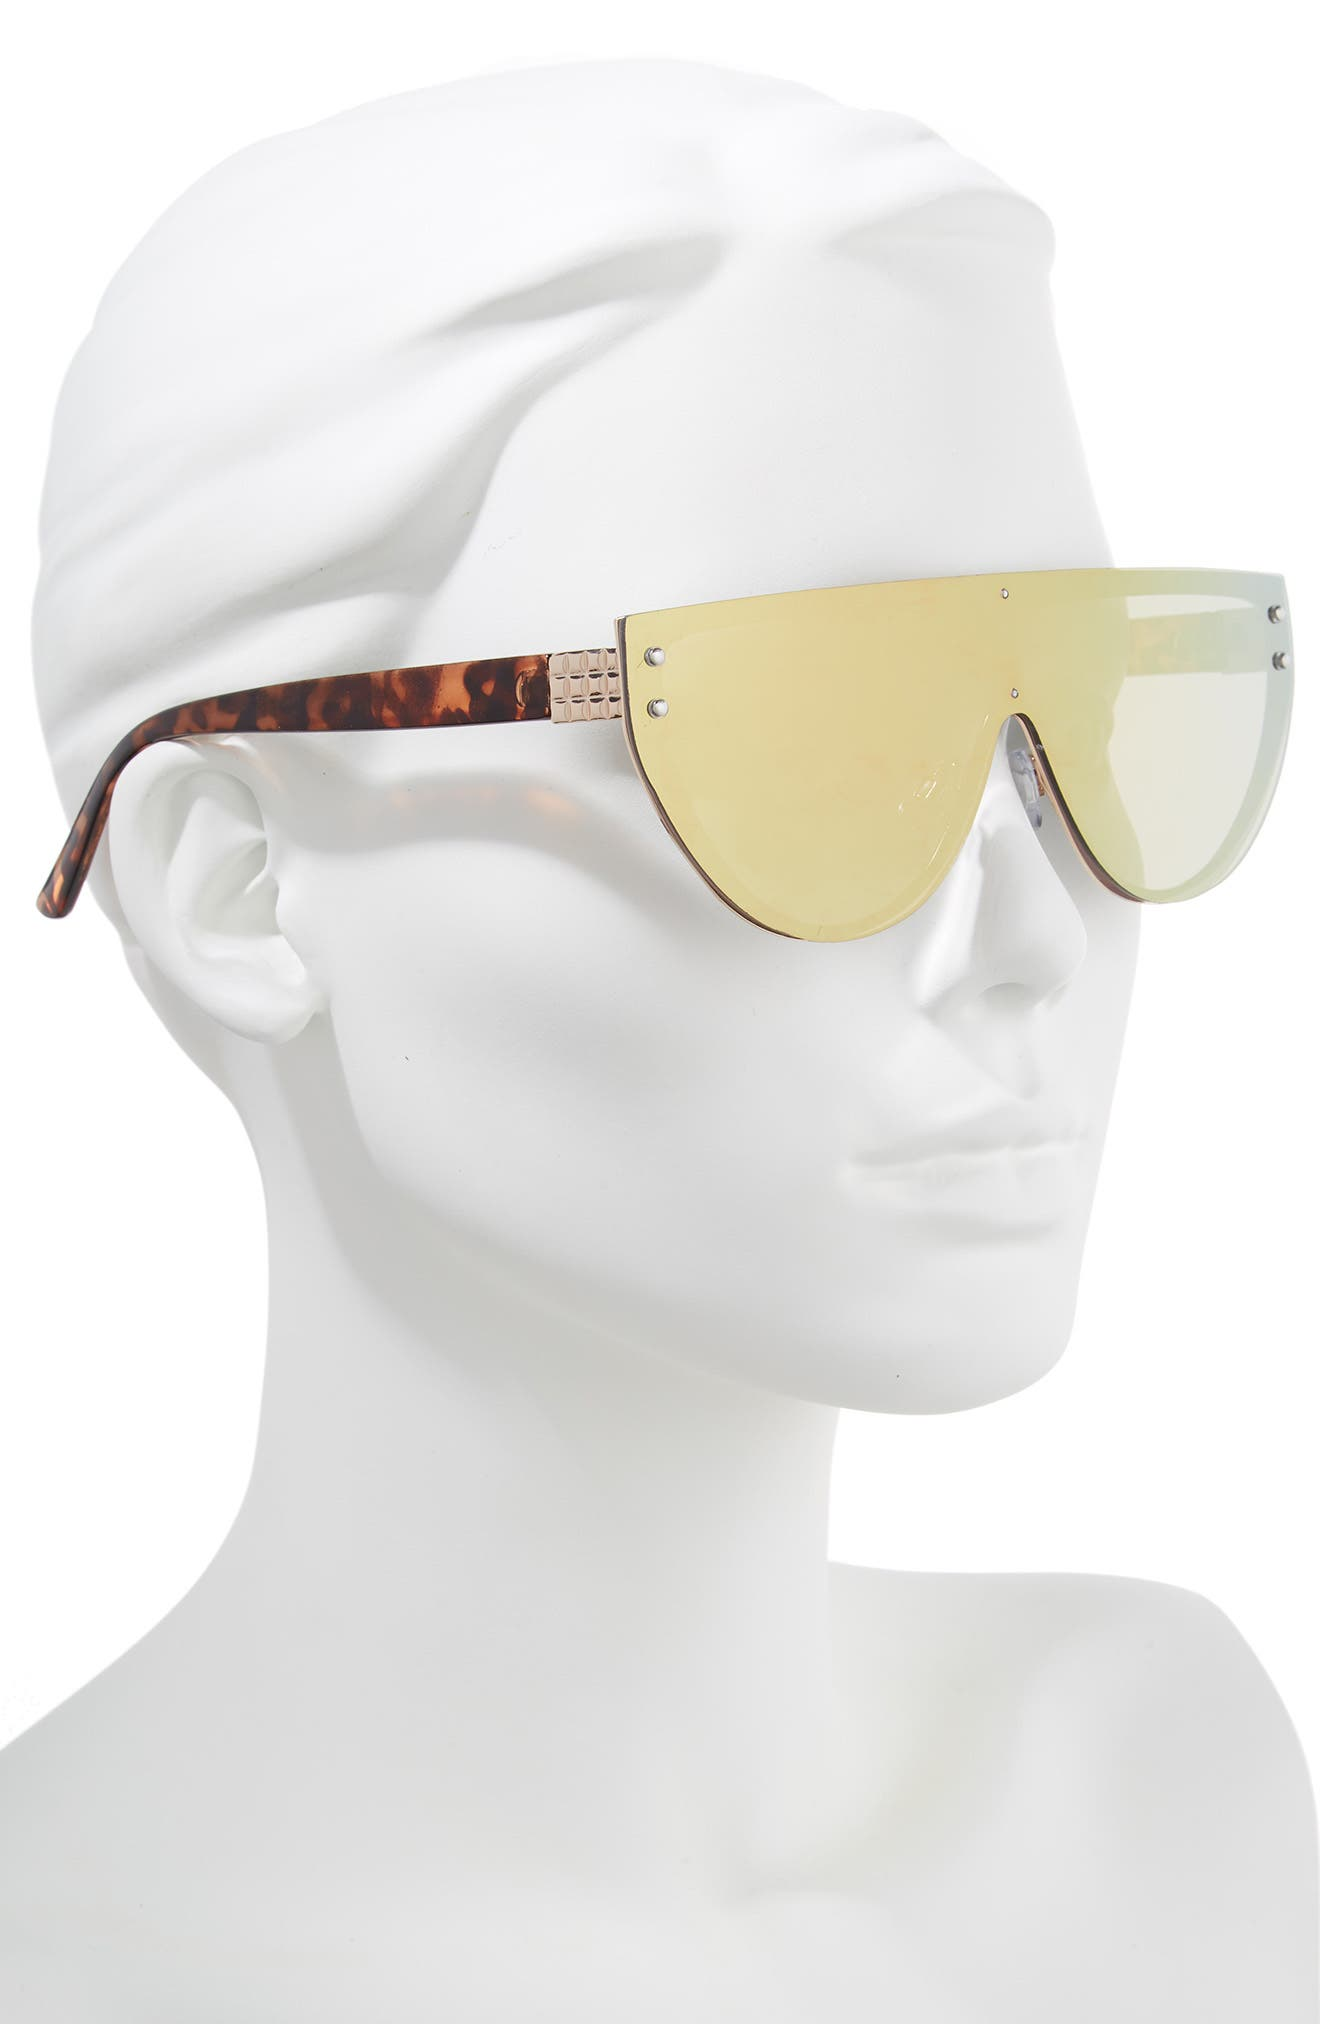 57mm Mirrored Rimless Shield Sunglasses,                             Alternate thumbnail 2, color,                             Tort/ Pink Mirror